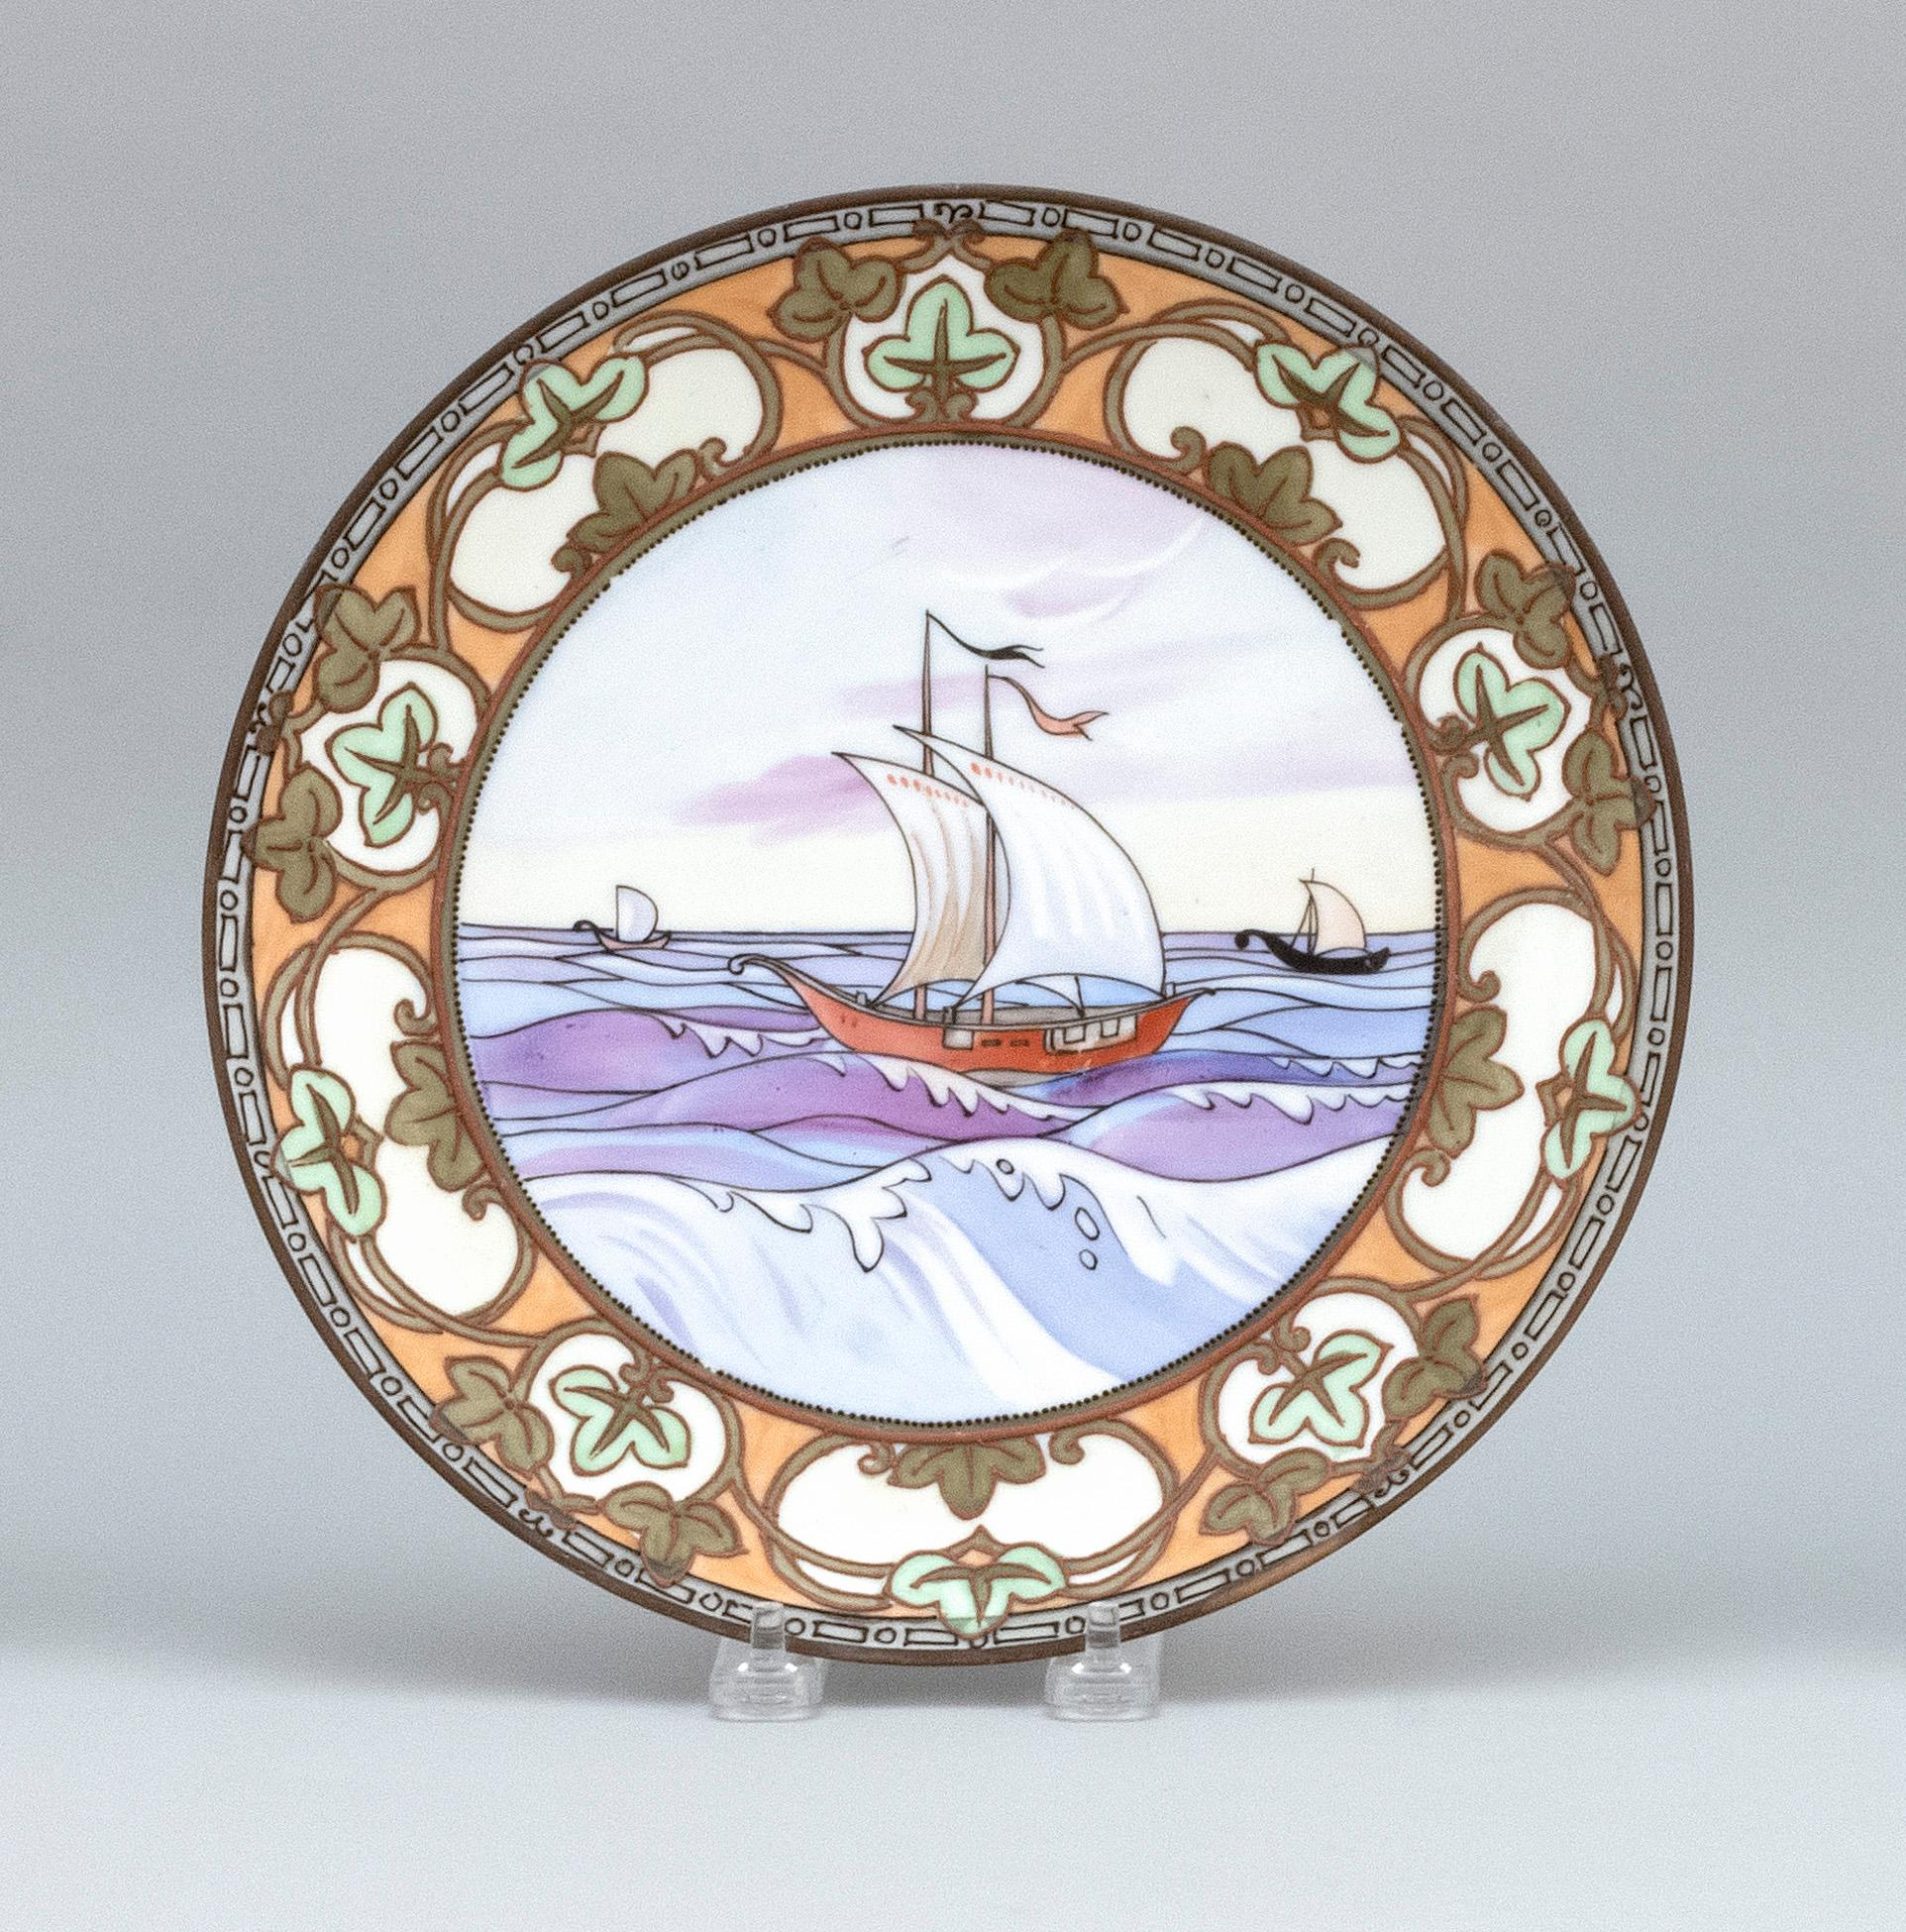 "NIPPON PORCELAIN PLATE With Norse sailing scene and moriage floral border. Diameter 10""."